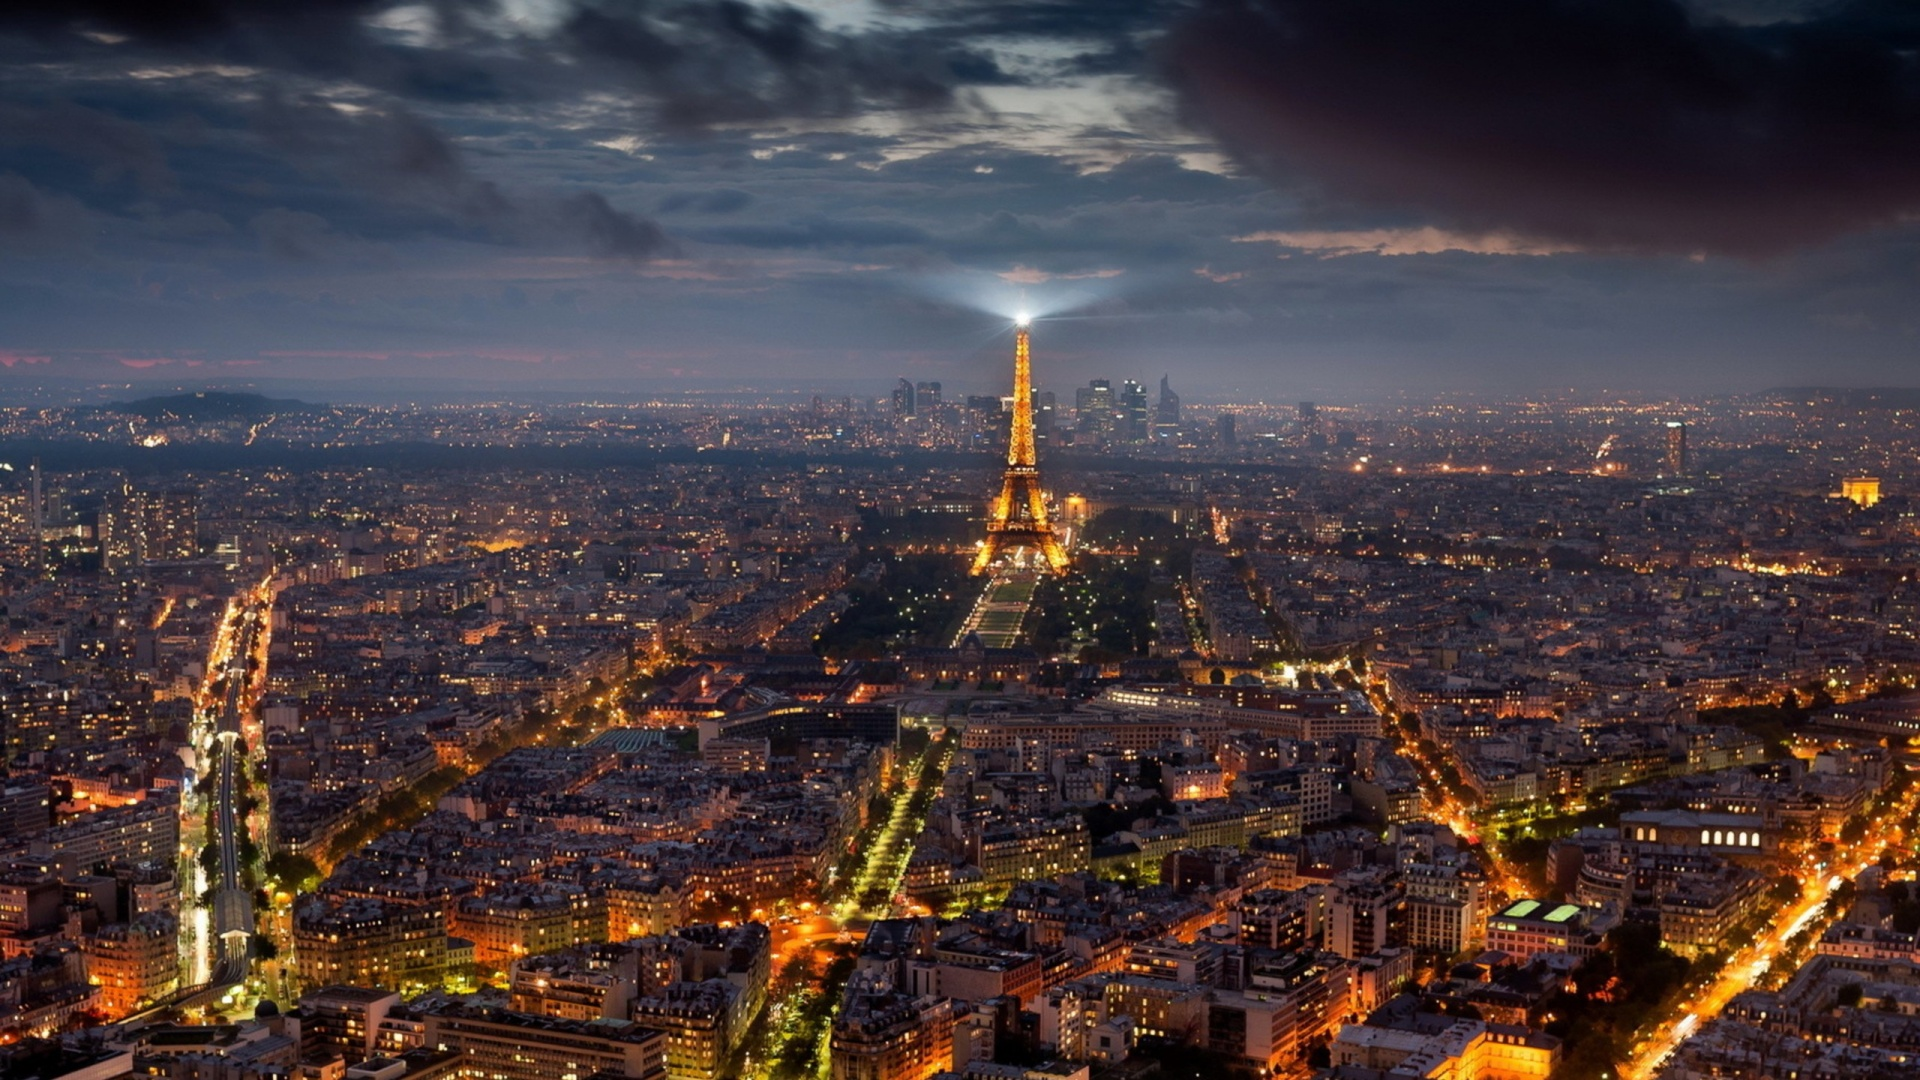 paris night cityscape wallpapers 43619 1920x1080